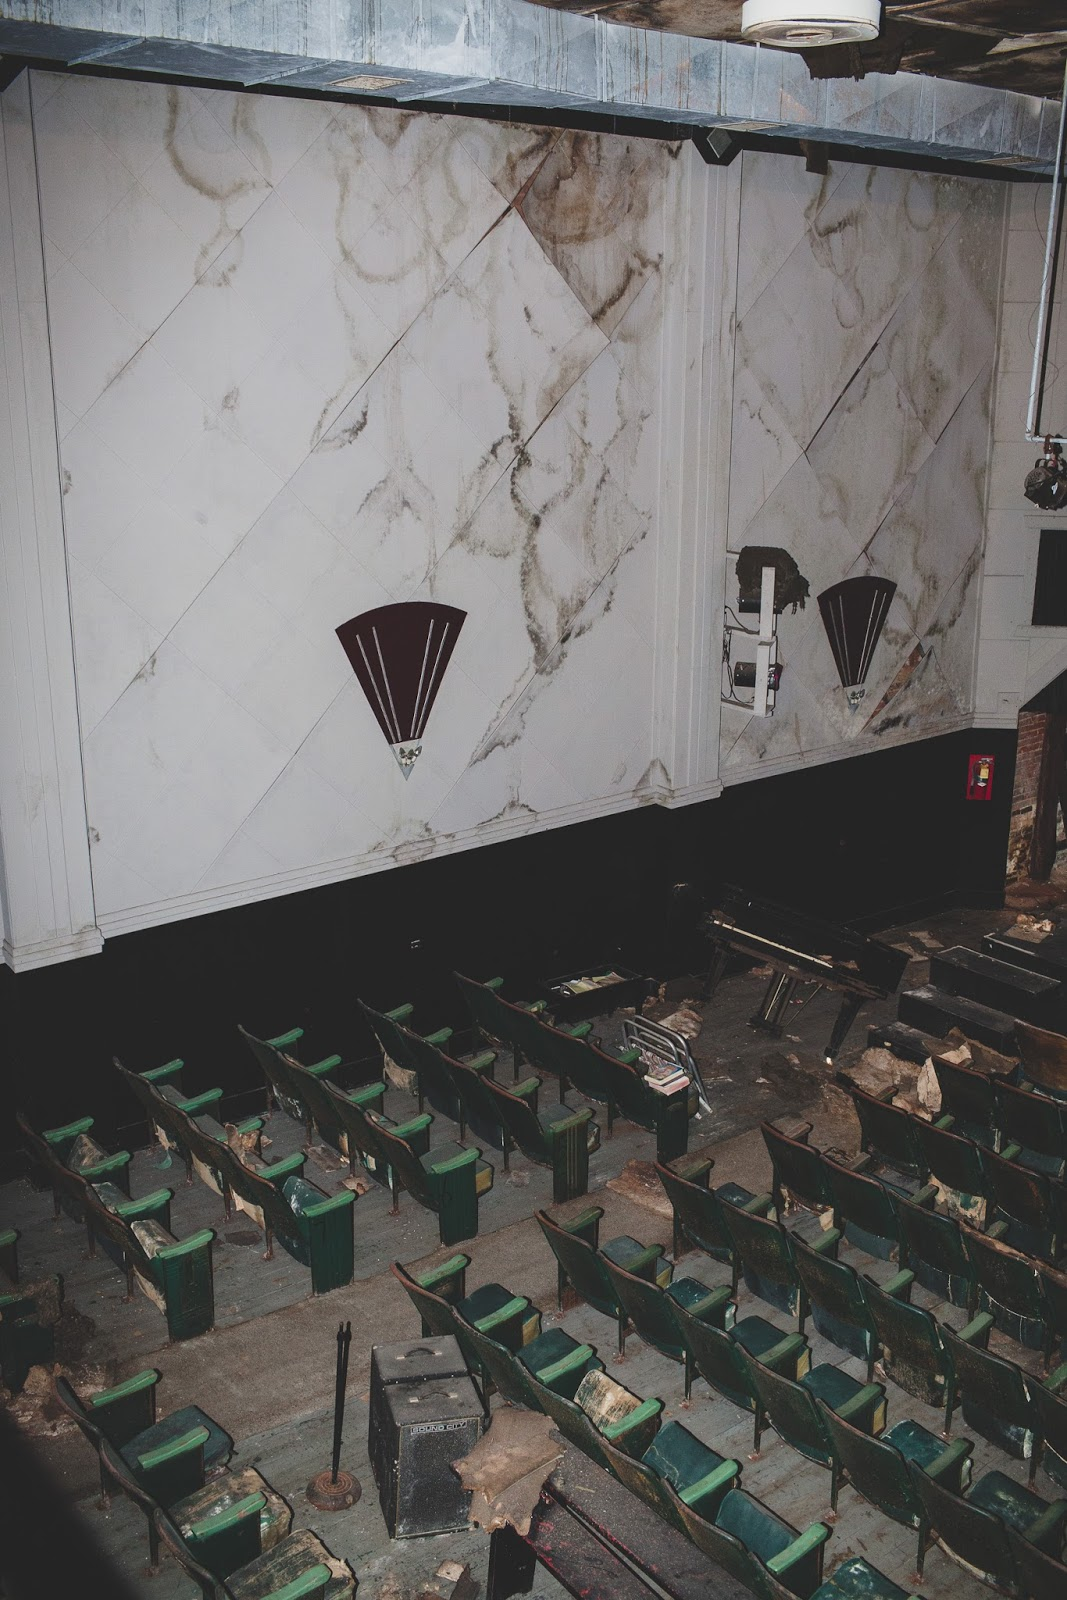 Bells Theatre with water damage. Help us revive our historic movie theatre! bit.ly/bellstheatre